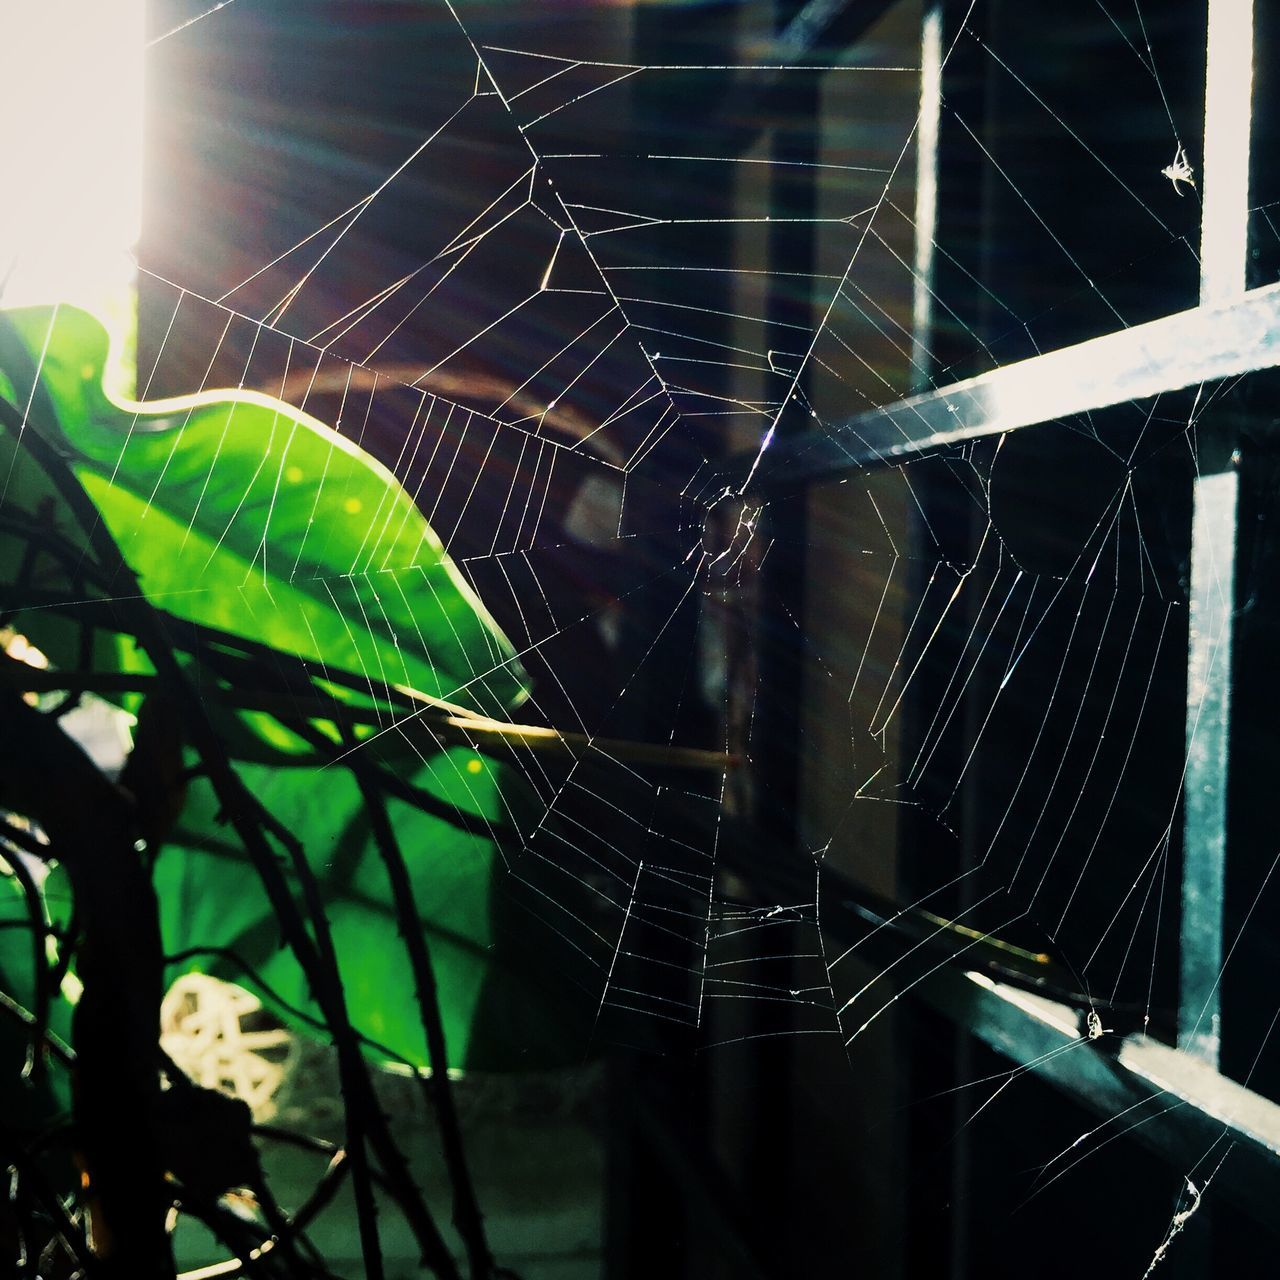 CLOSE-UP OF SPIDER WEB IN THE BACKGROUND